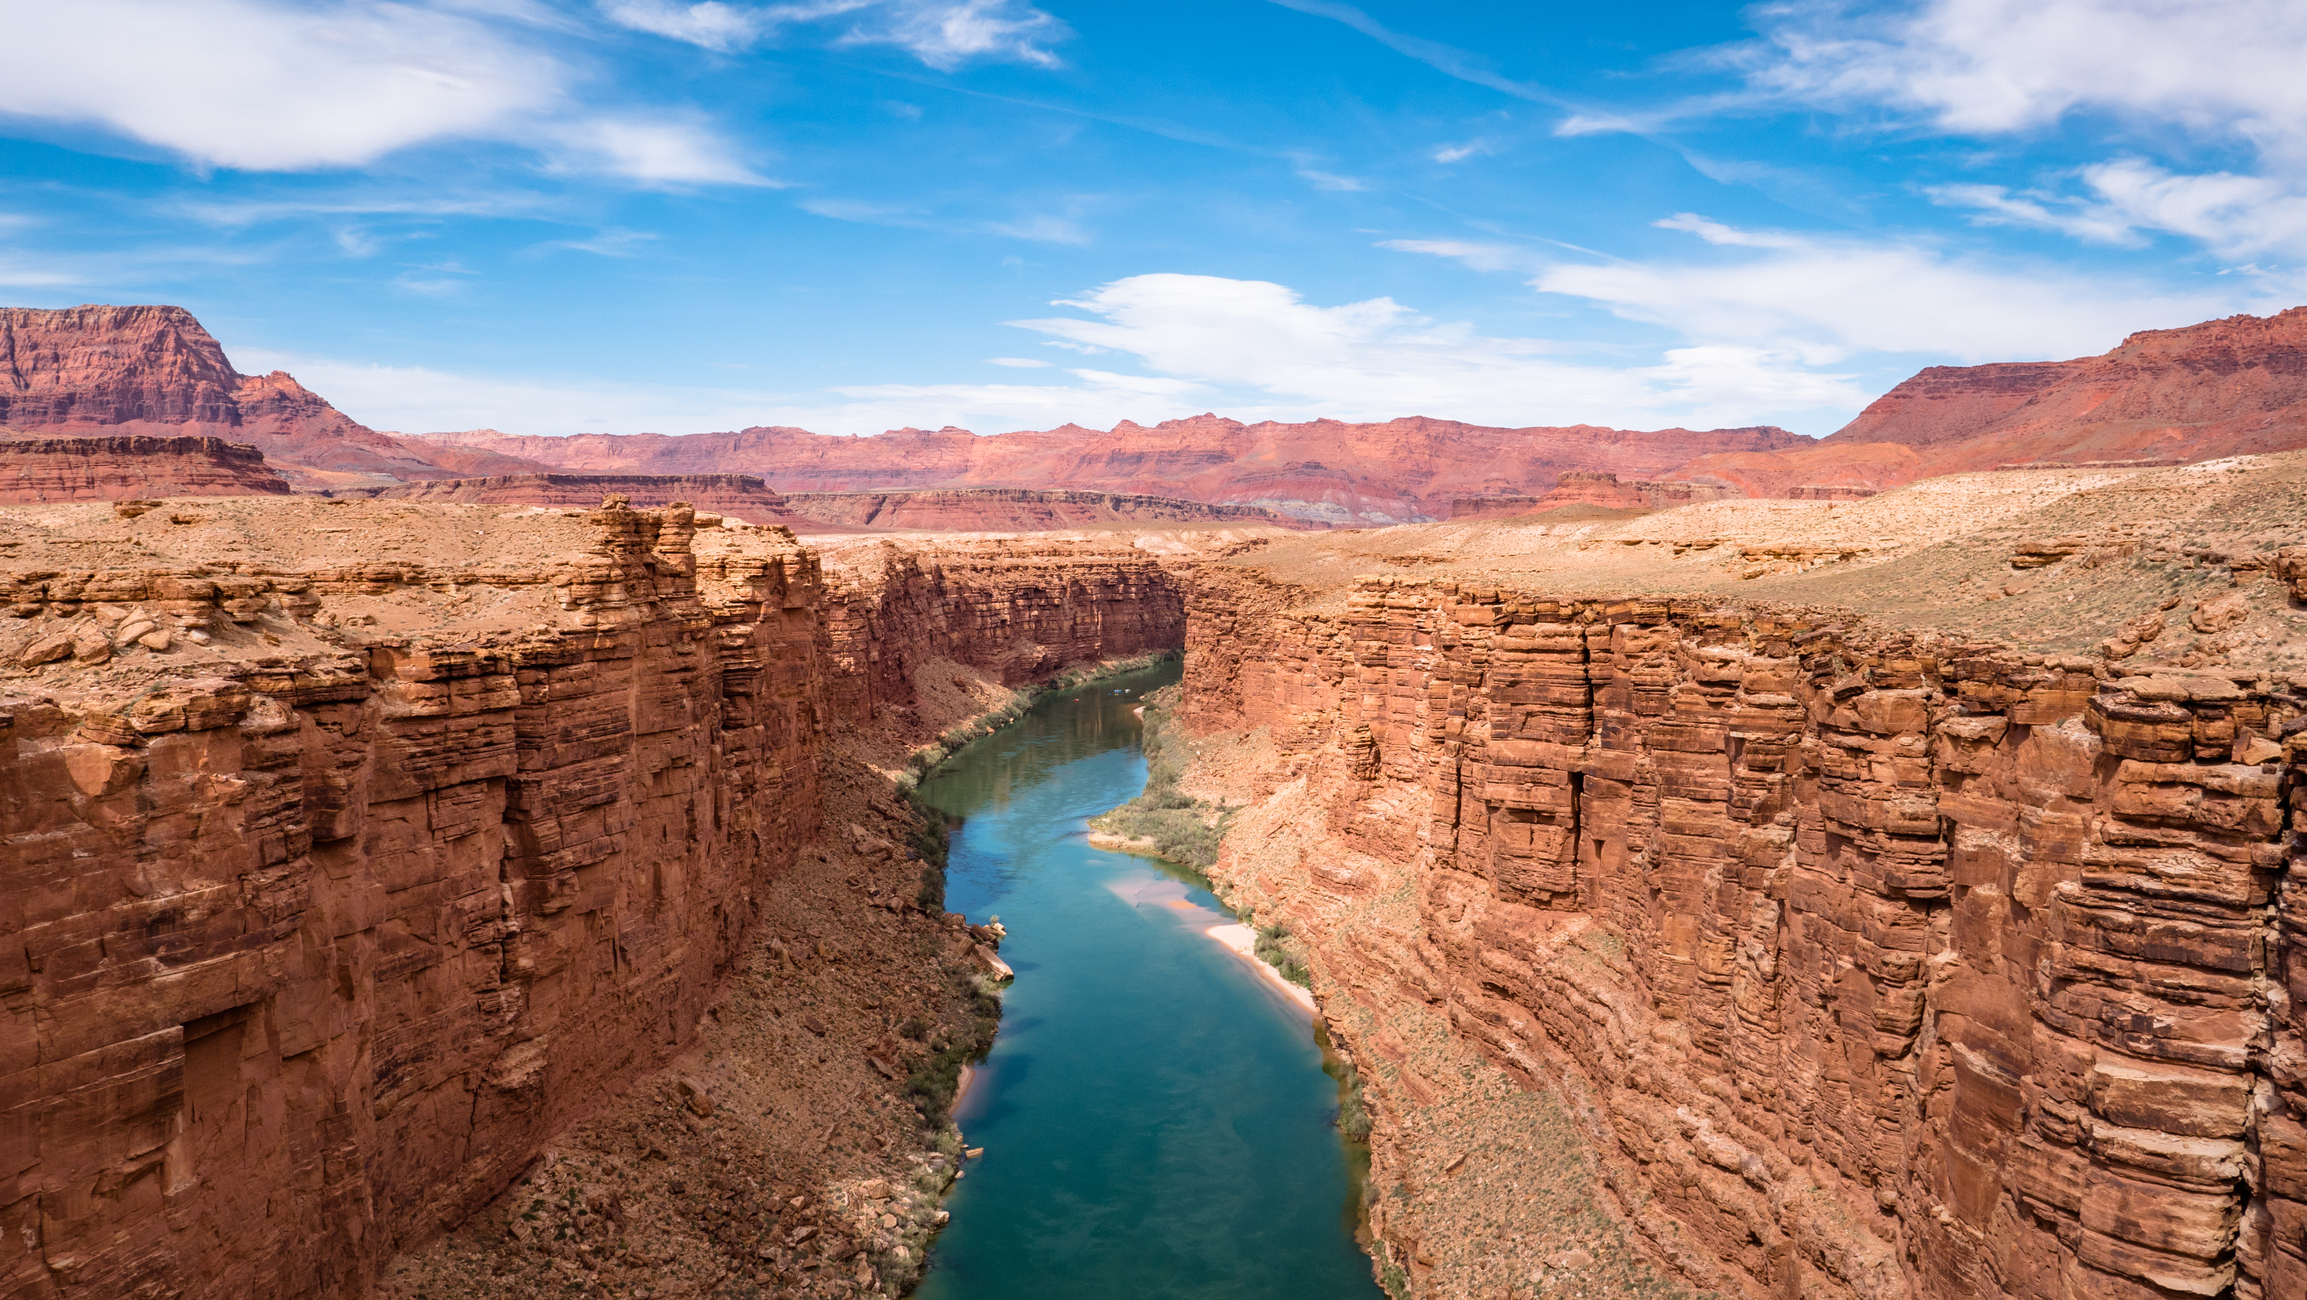 The Grand Canyon (Arizona)